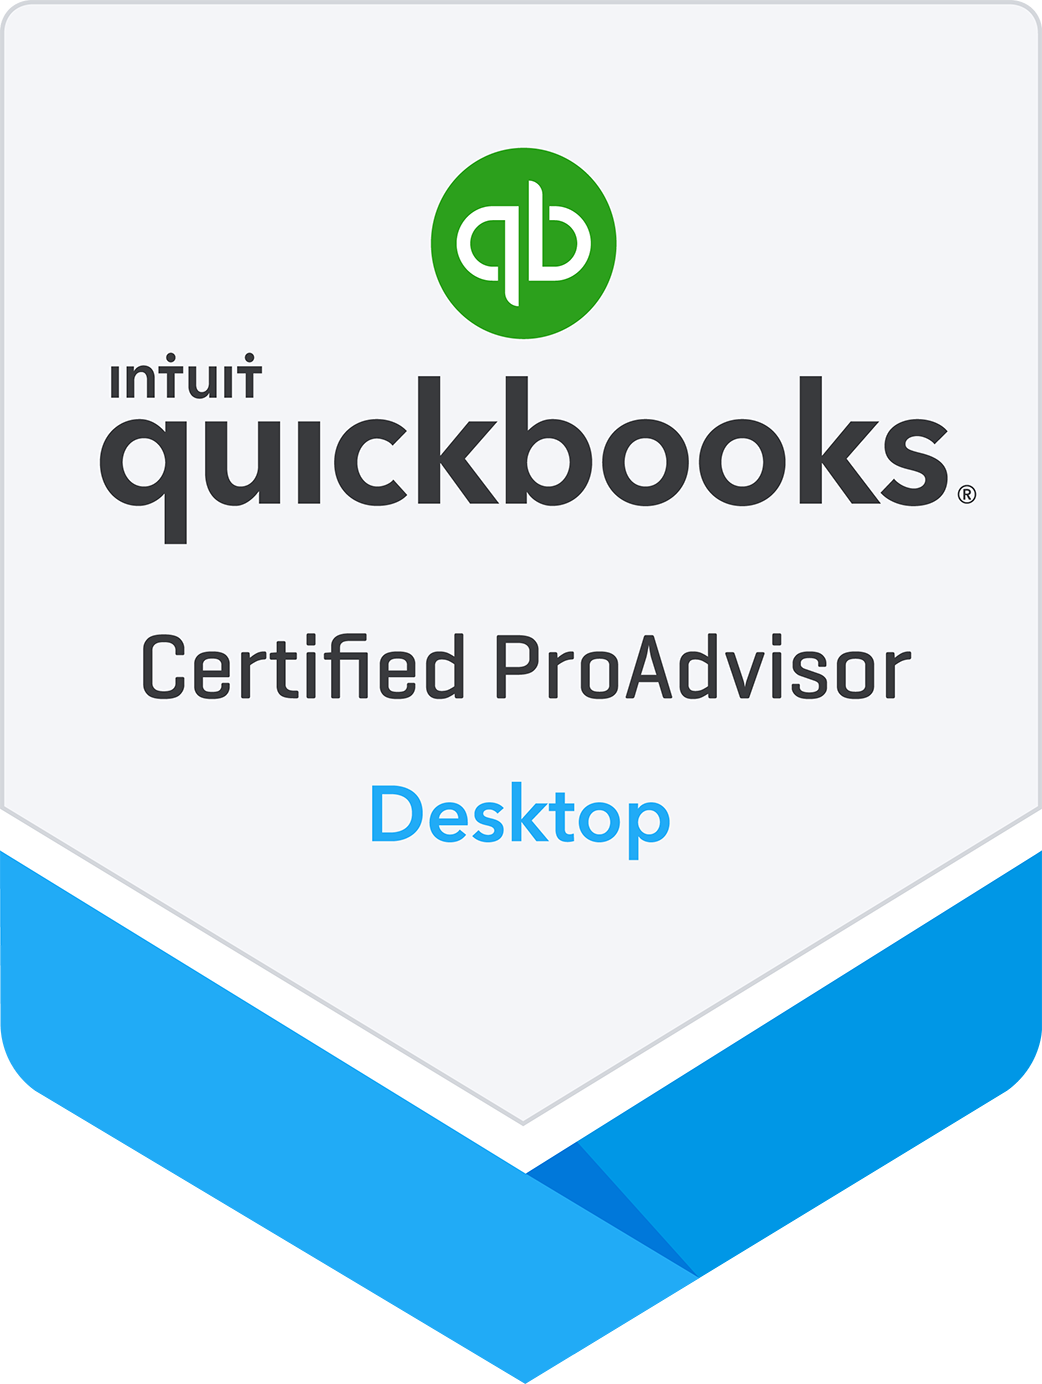 Certified QuickBooks Proadvisor southeast of Columbus, OH. Based in Logan, OH.